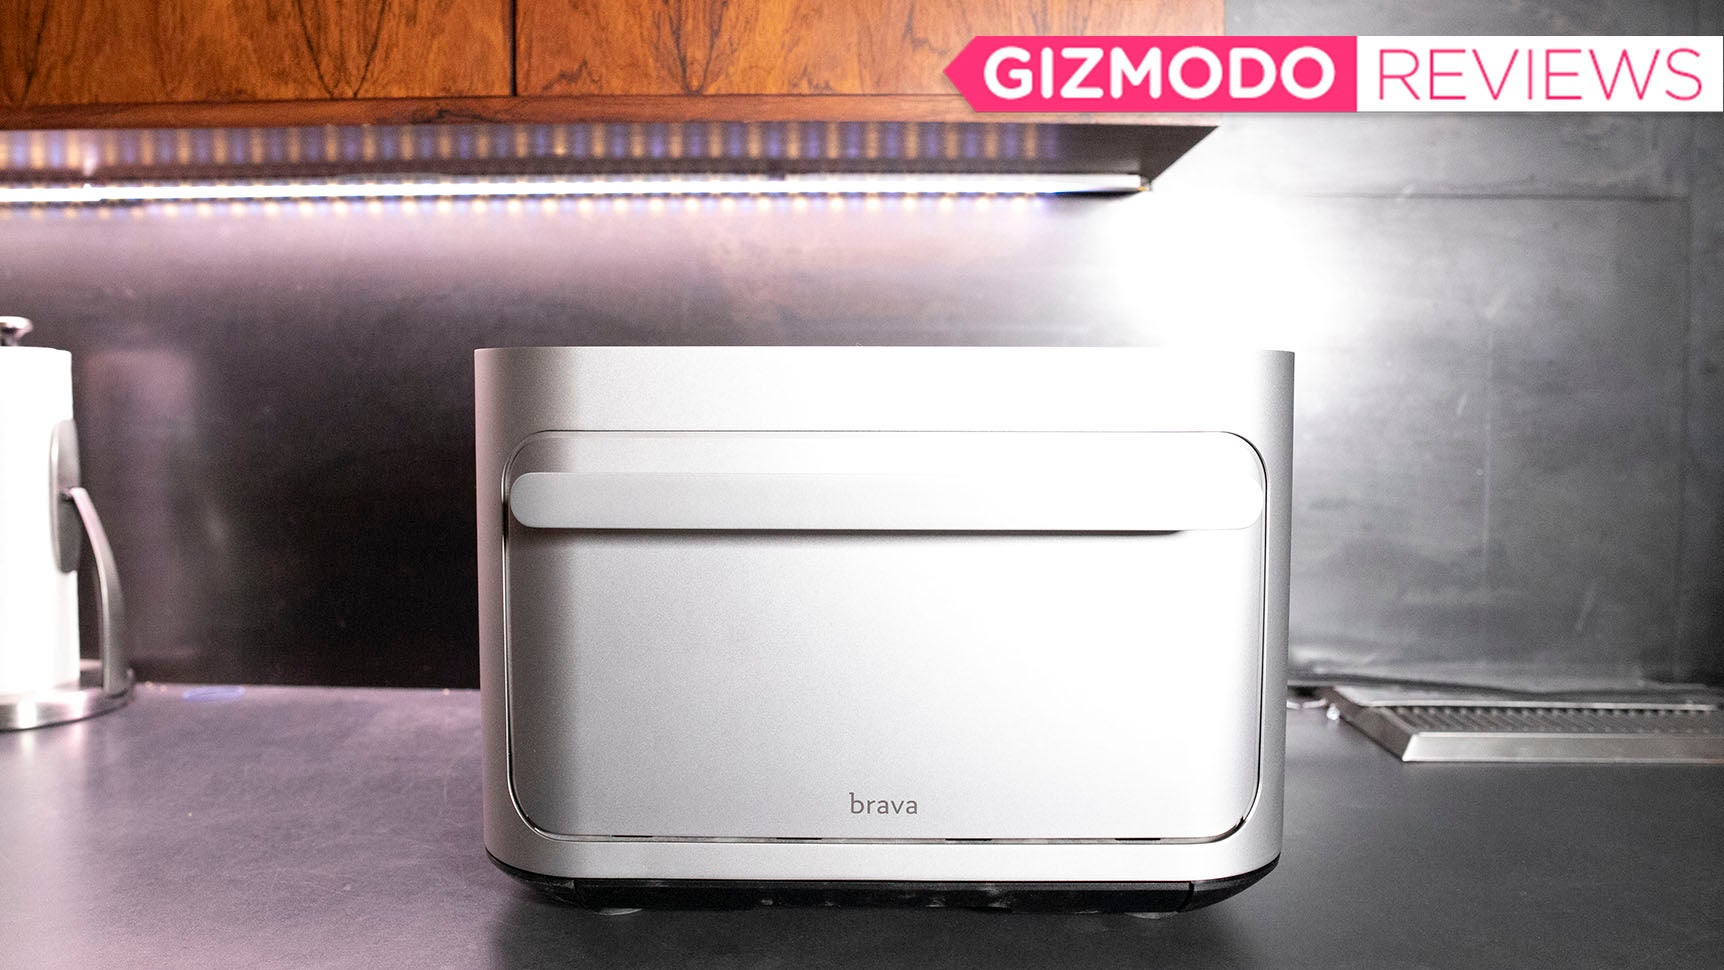 This Smart Oven Humiliated Me